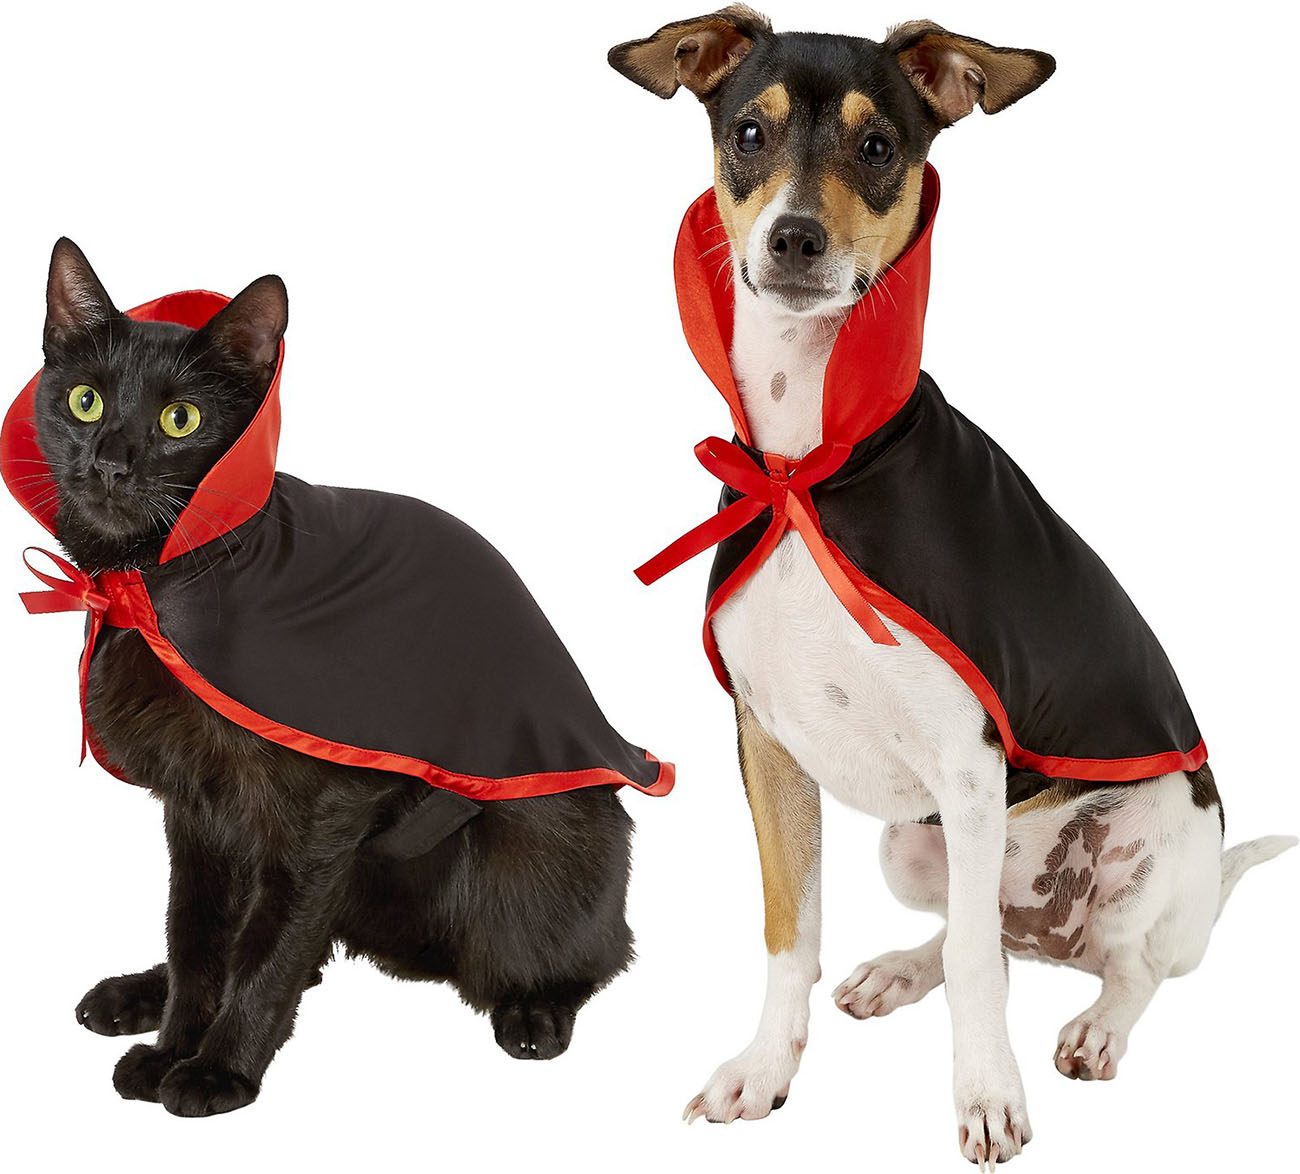 Vampire pet Halloween costume for cats and dogs